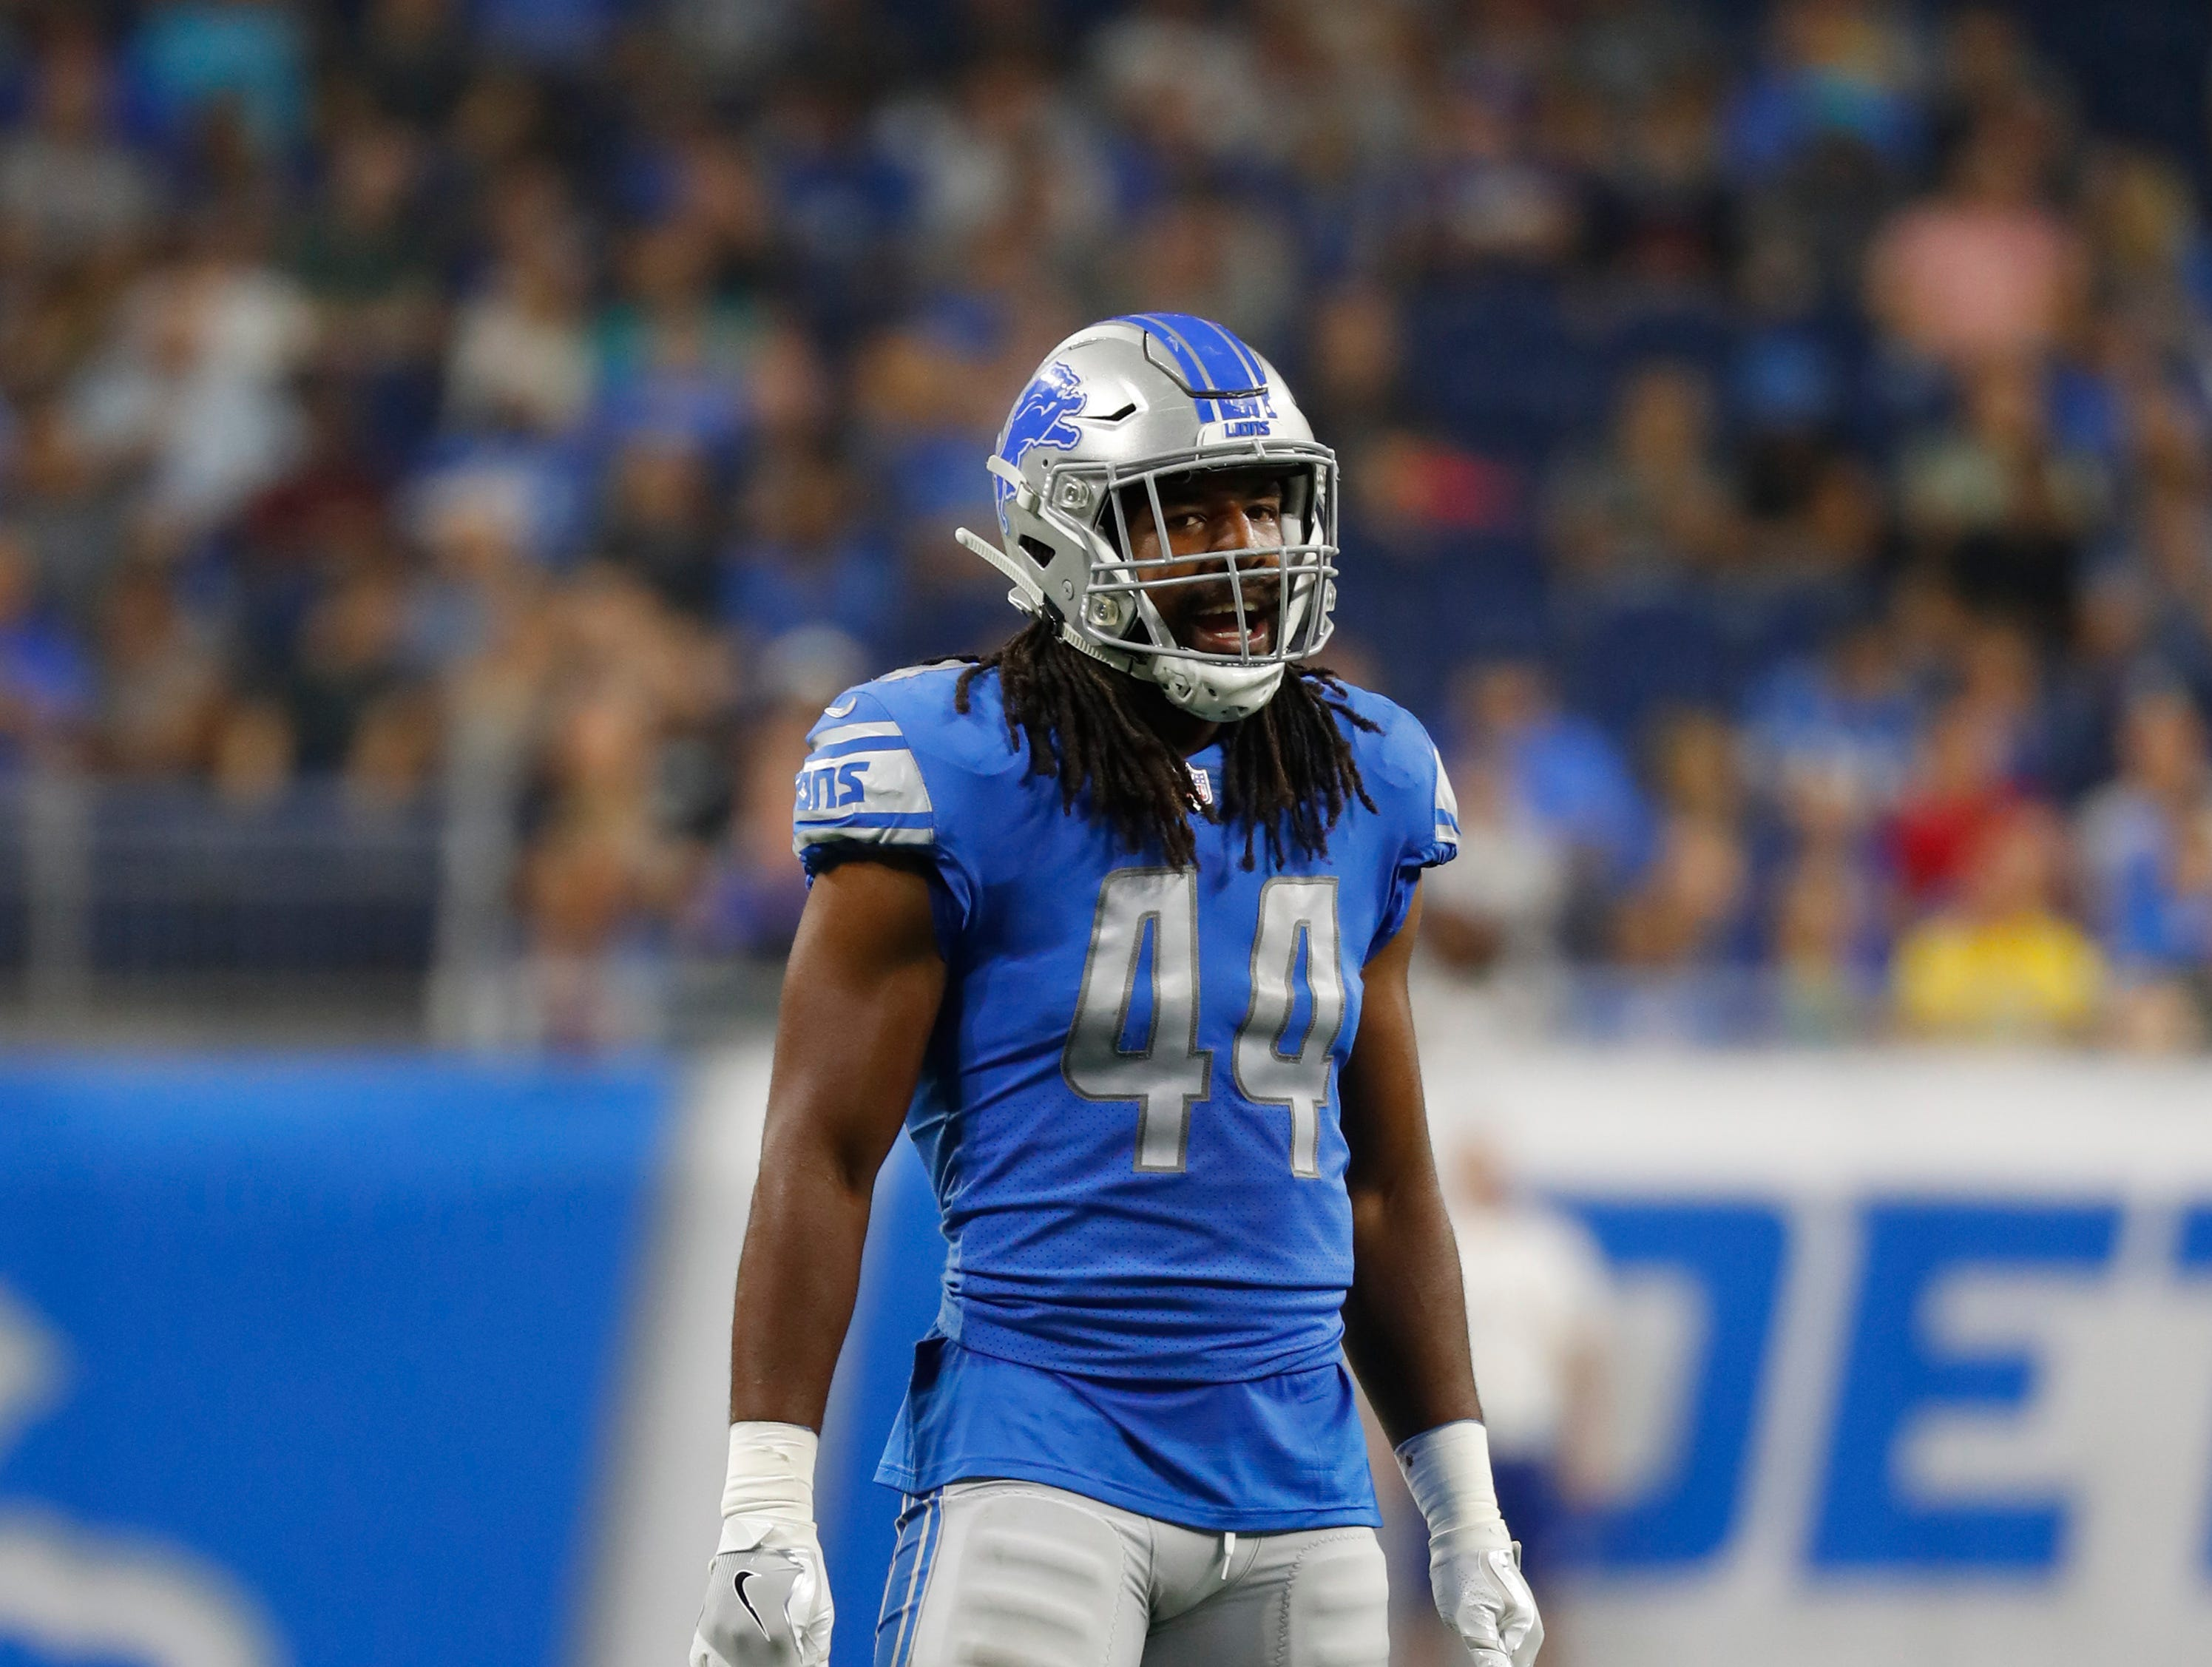 LB Jalen Reeves-Maybin: After the Lions prioritized getting bigger at linebacker this season, Reeves-Maybin felt like an awkward fit for the scheme. When he's gets into games, he offers more coverage range than Detroit's other linebackers, but despite how instinctual he can be, he's unreliable against the run because he struggles to get off blocks if he doesn't diagnose quickly enough to beat the blocker to the spot. Grade: C